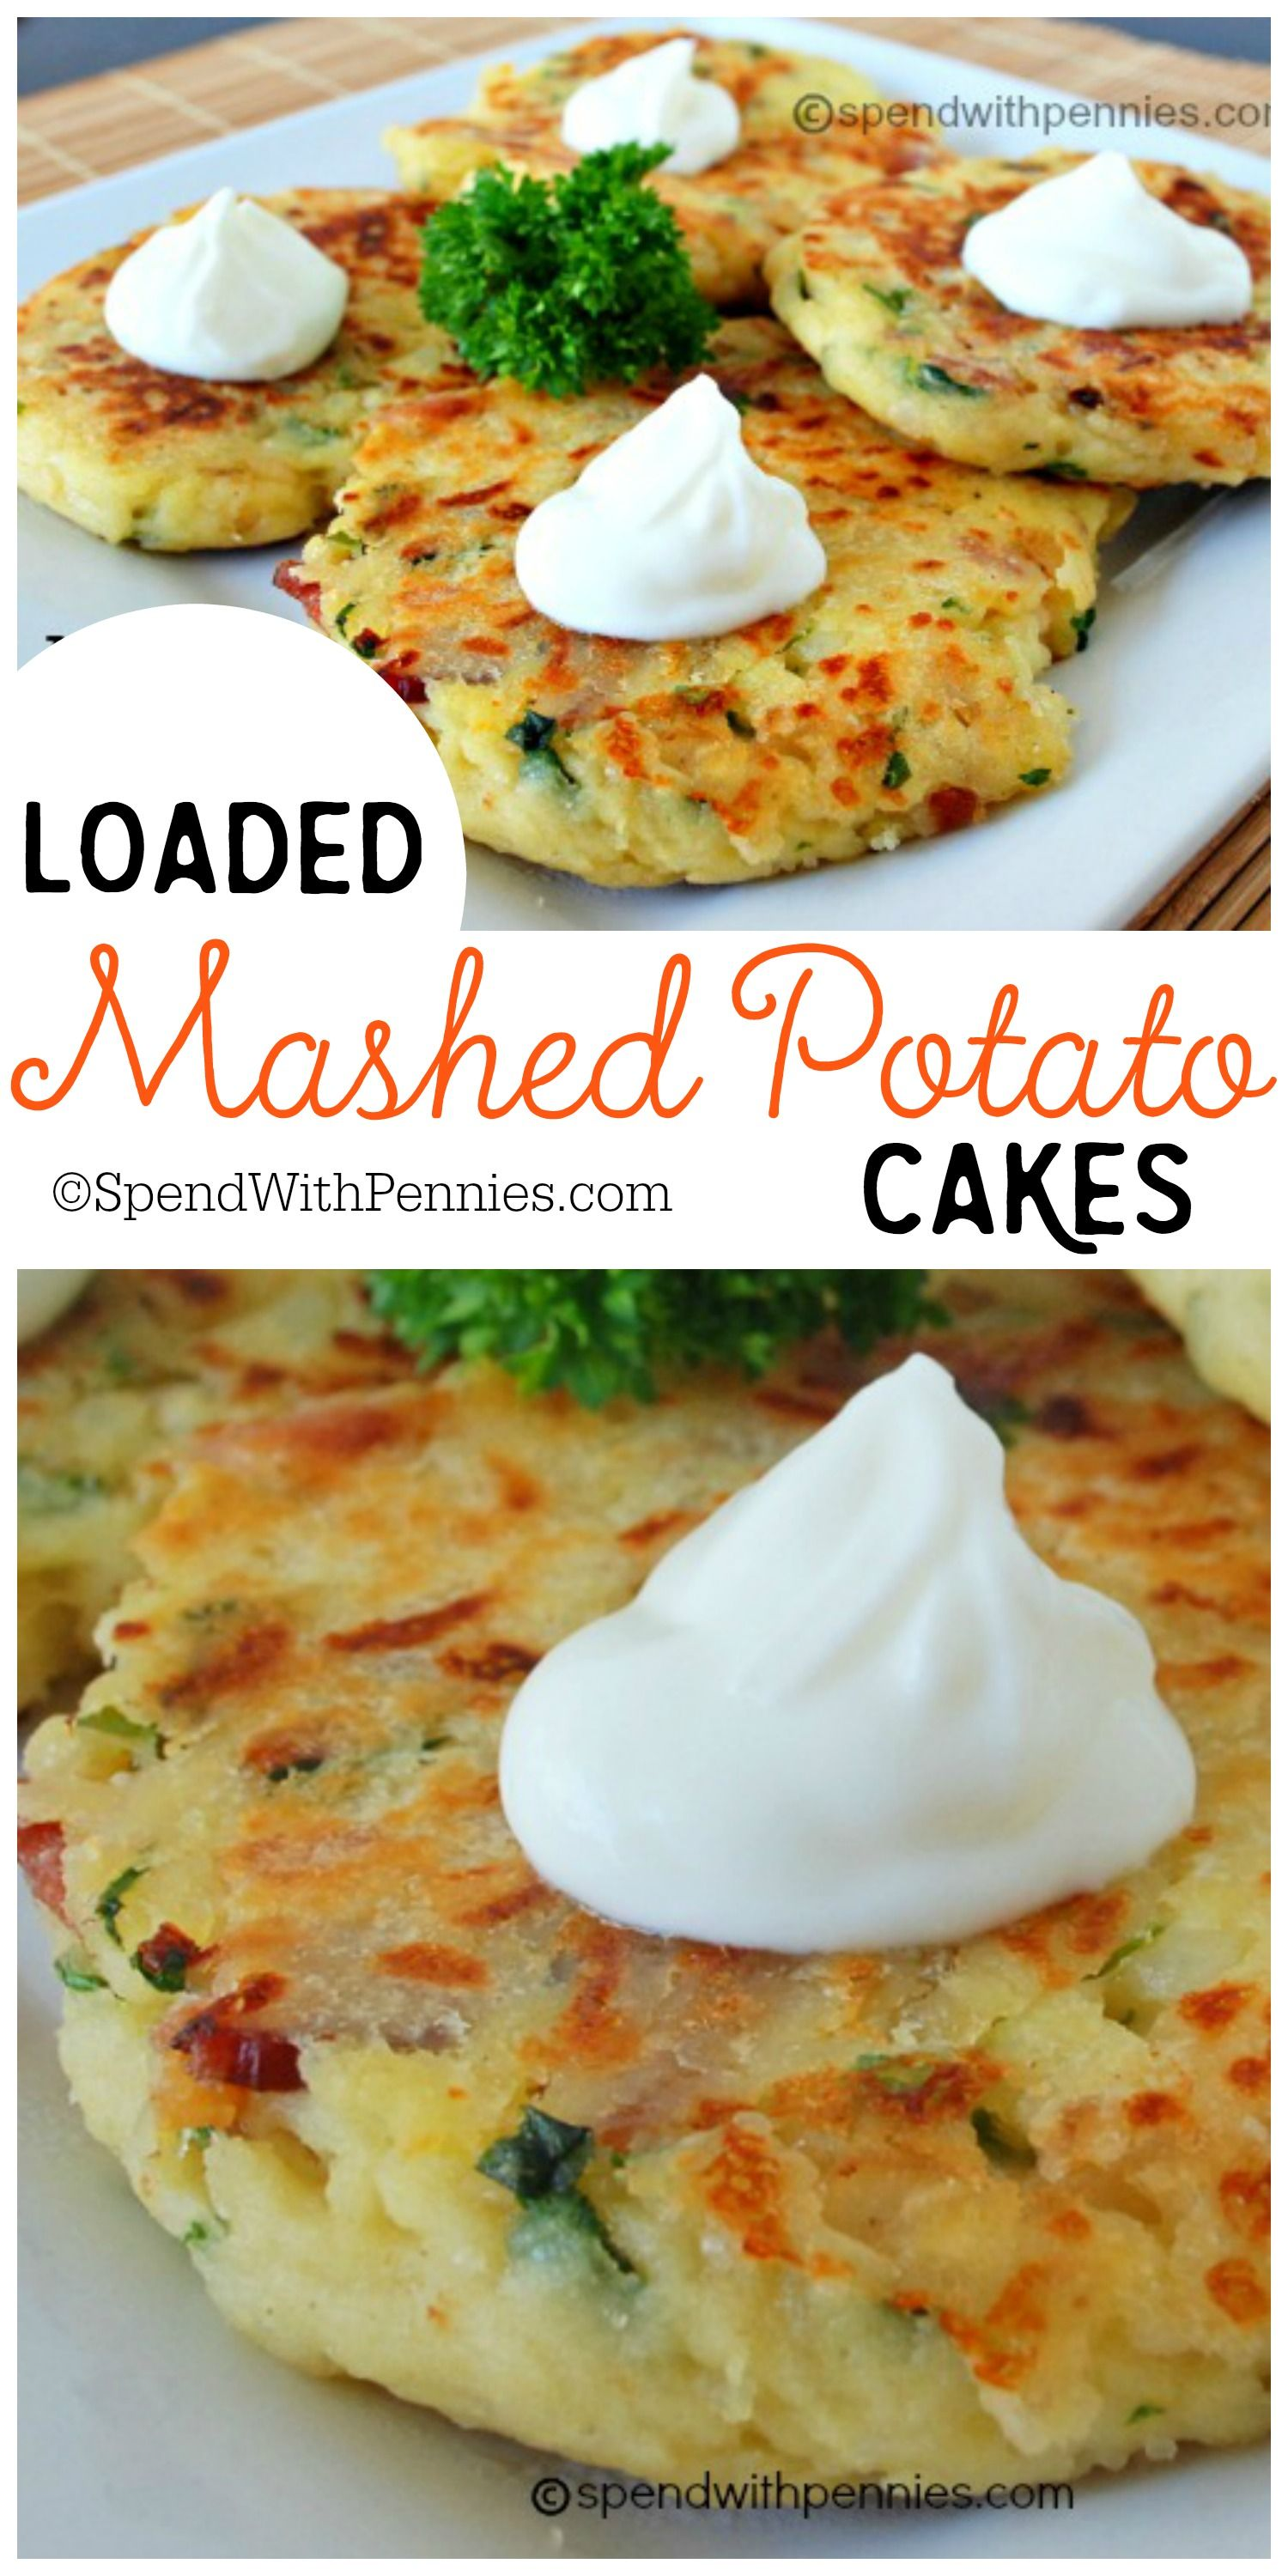 Loaded Mashed Potato Cakes Recipes Food Cooking